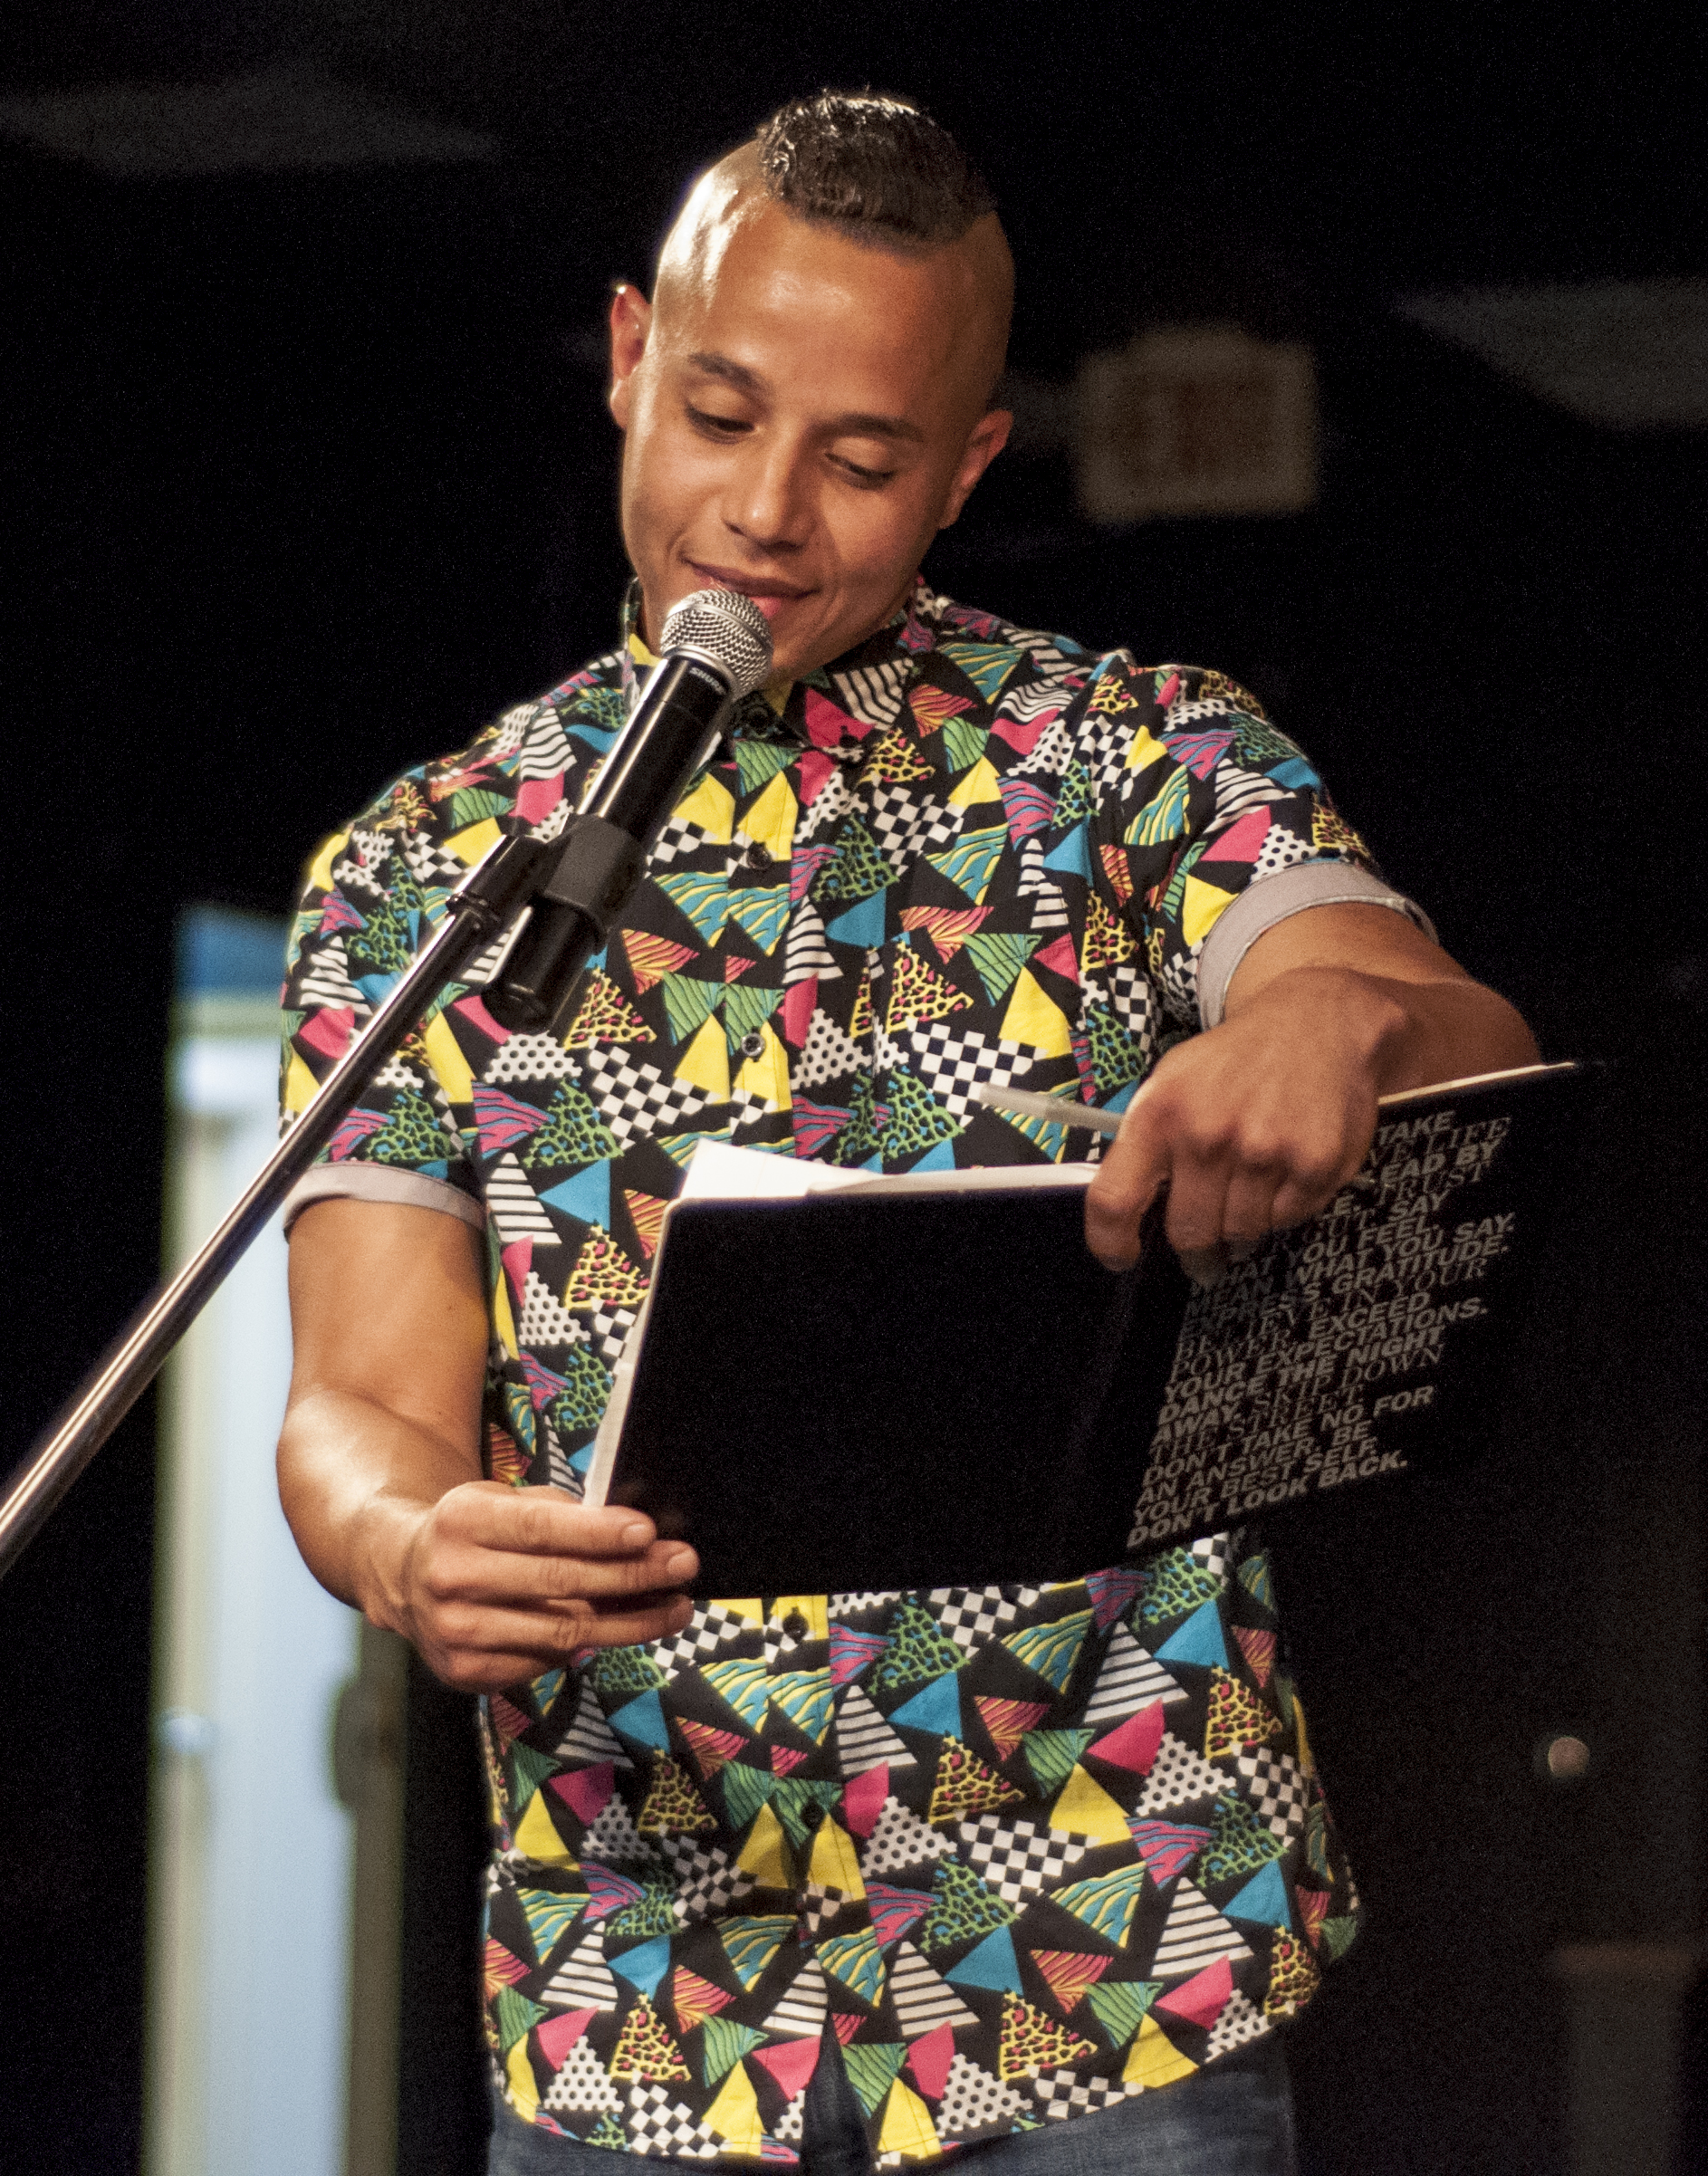 August 2, 2019 Higher Purpose Opening Reception. Spoken word John Peralta Photo credit Vacant Skye Photography.